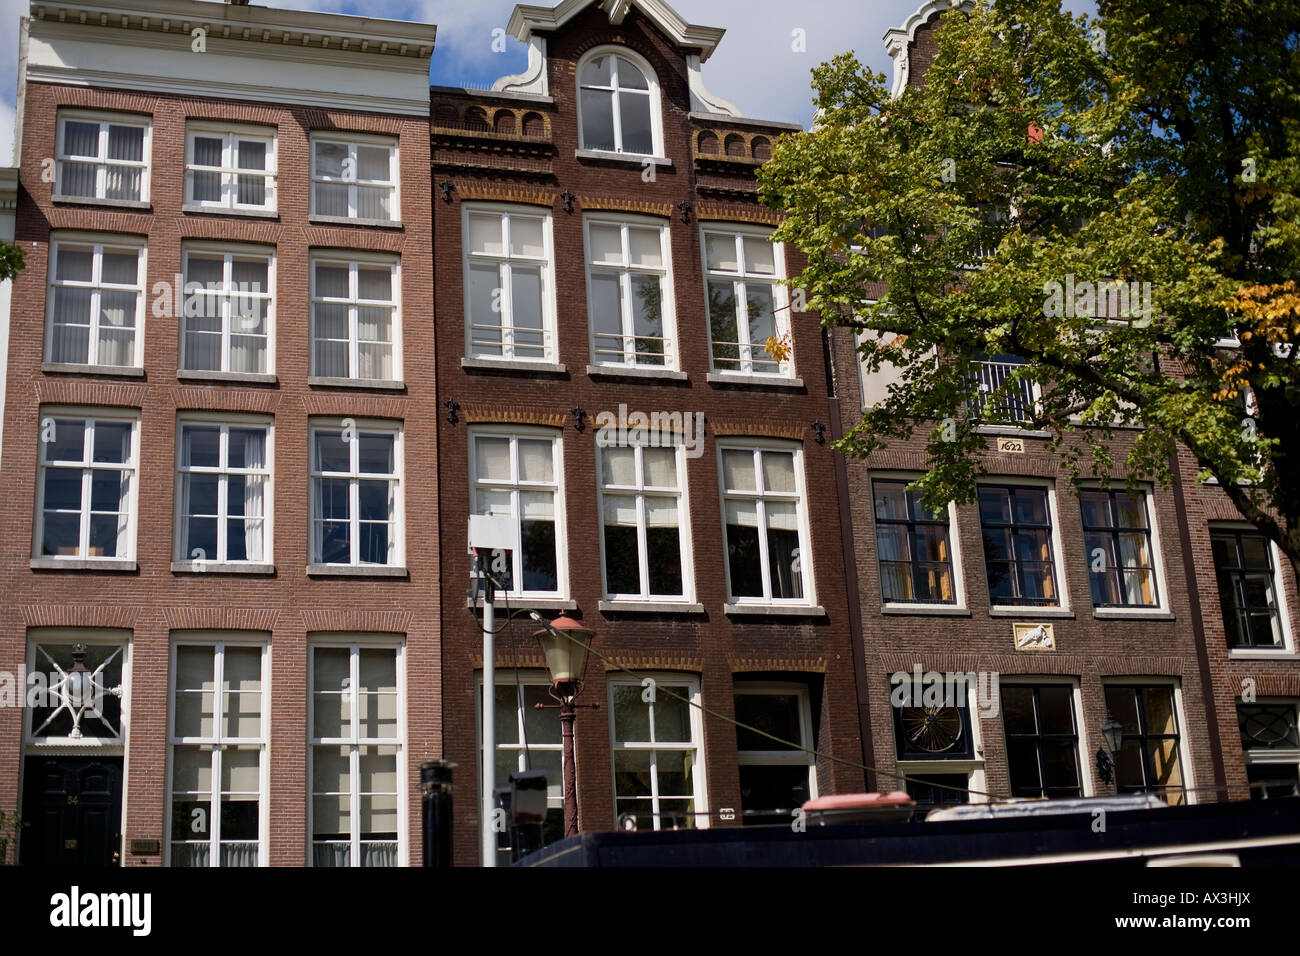 a row of red brick apartment buildings, distinguished by the white ...